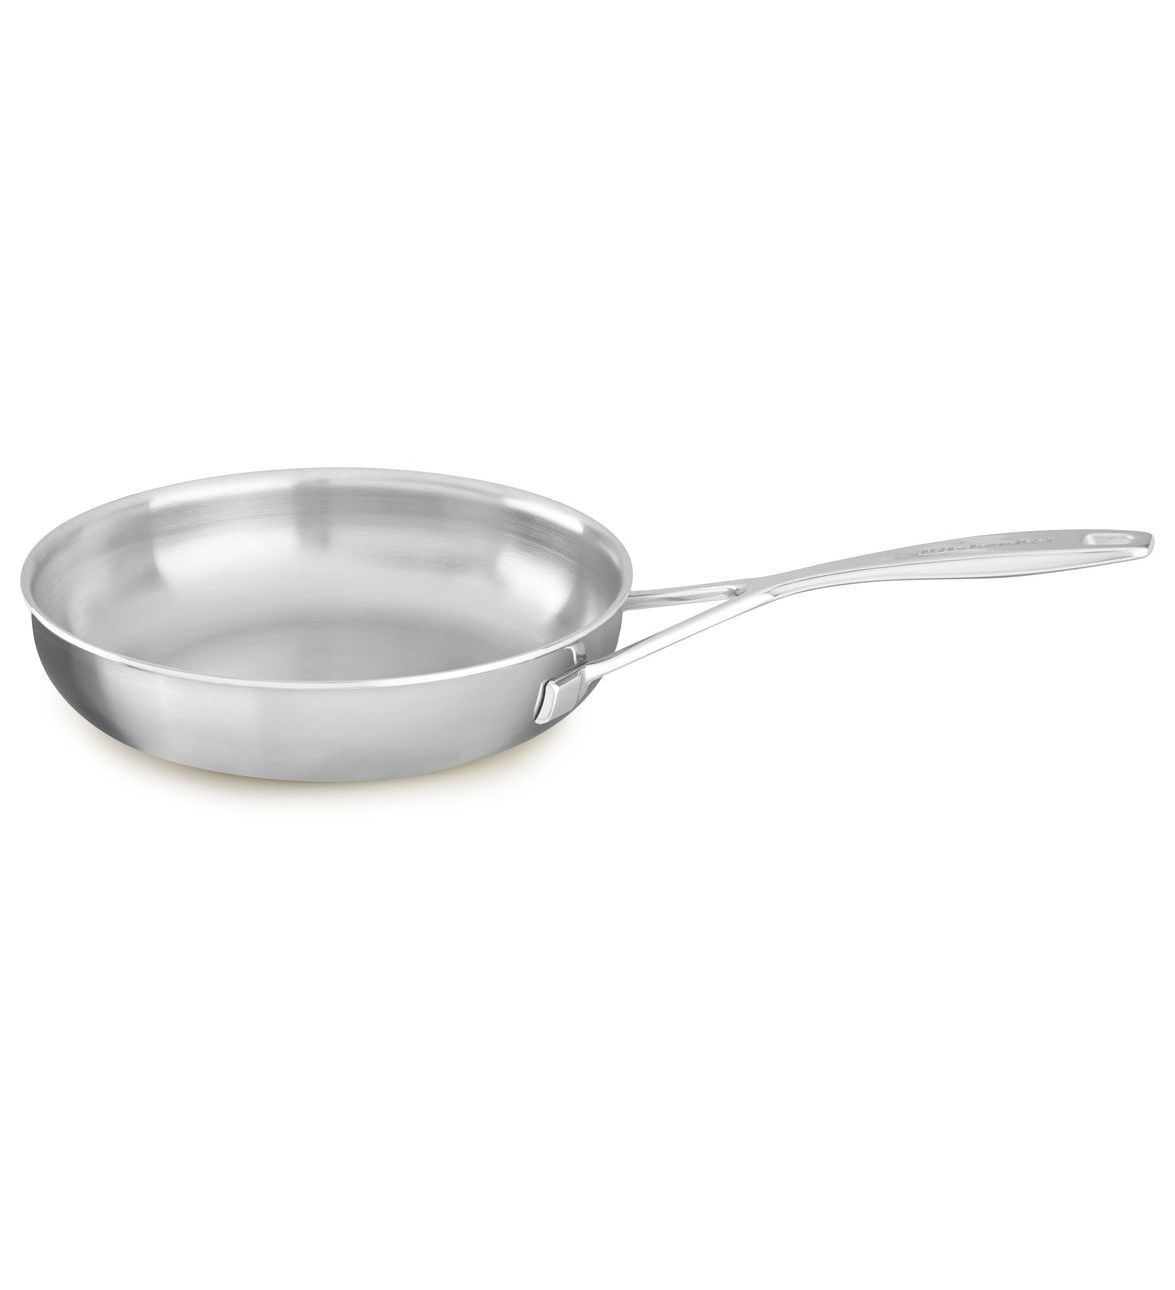 "KitchenAid® 7-Ply Stainless Steel with Copper Core 10"" Skillet"